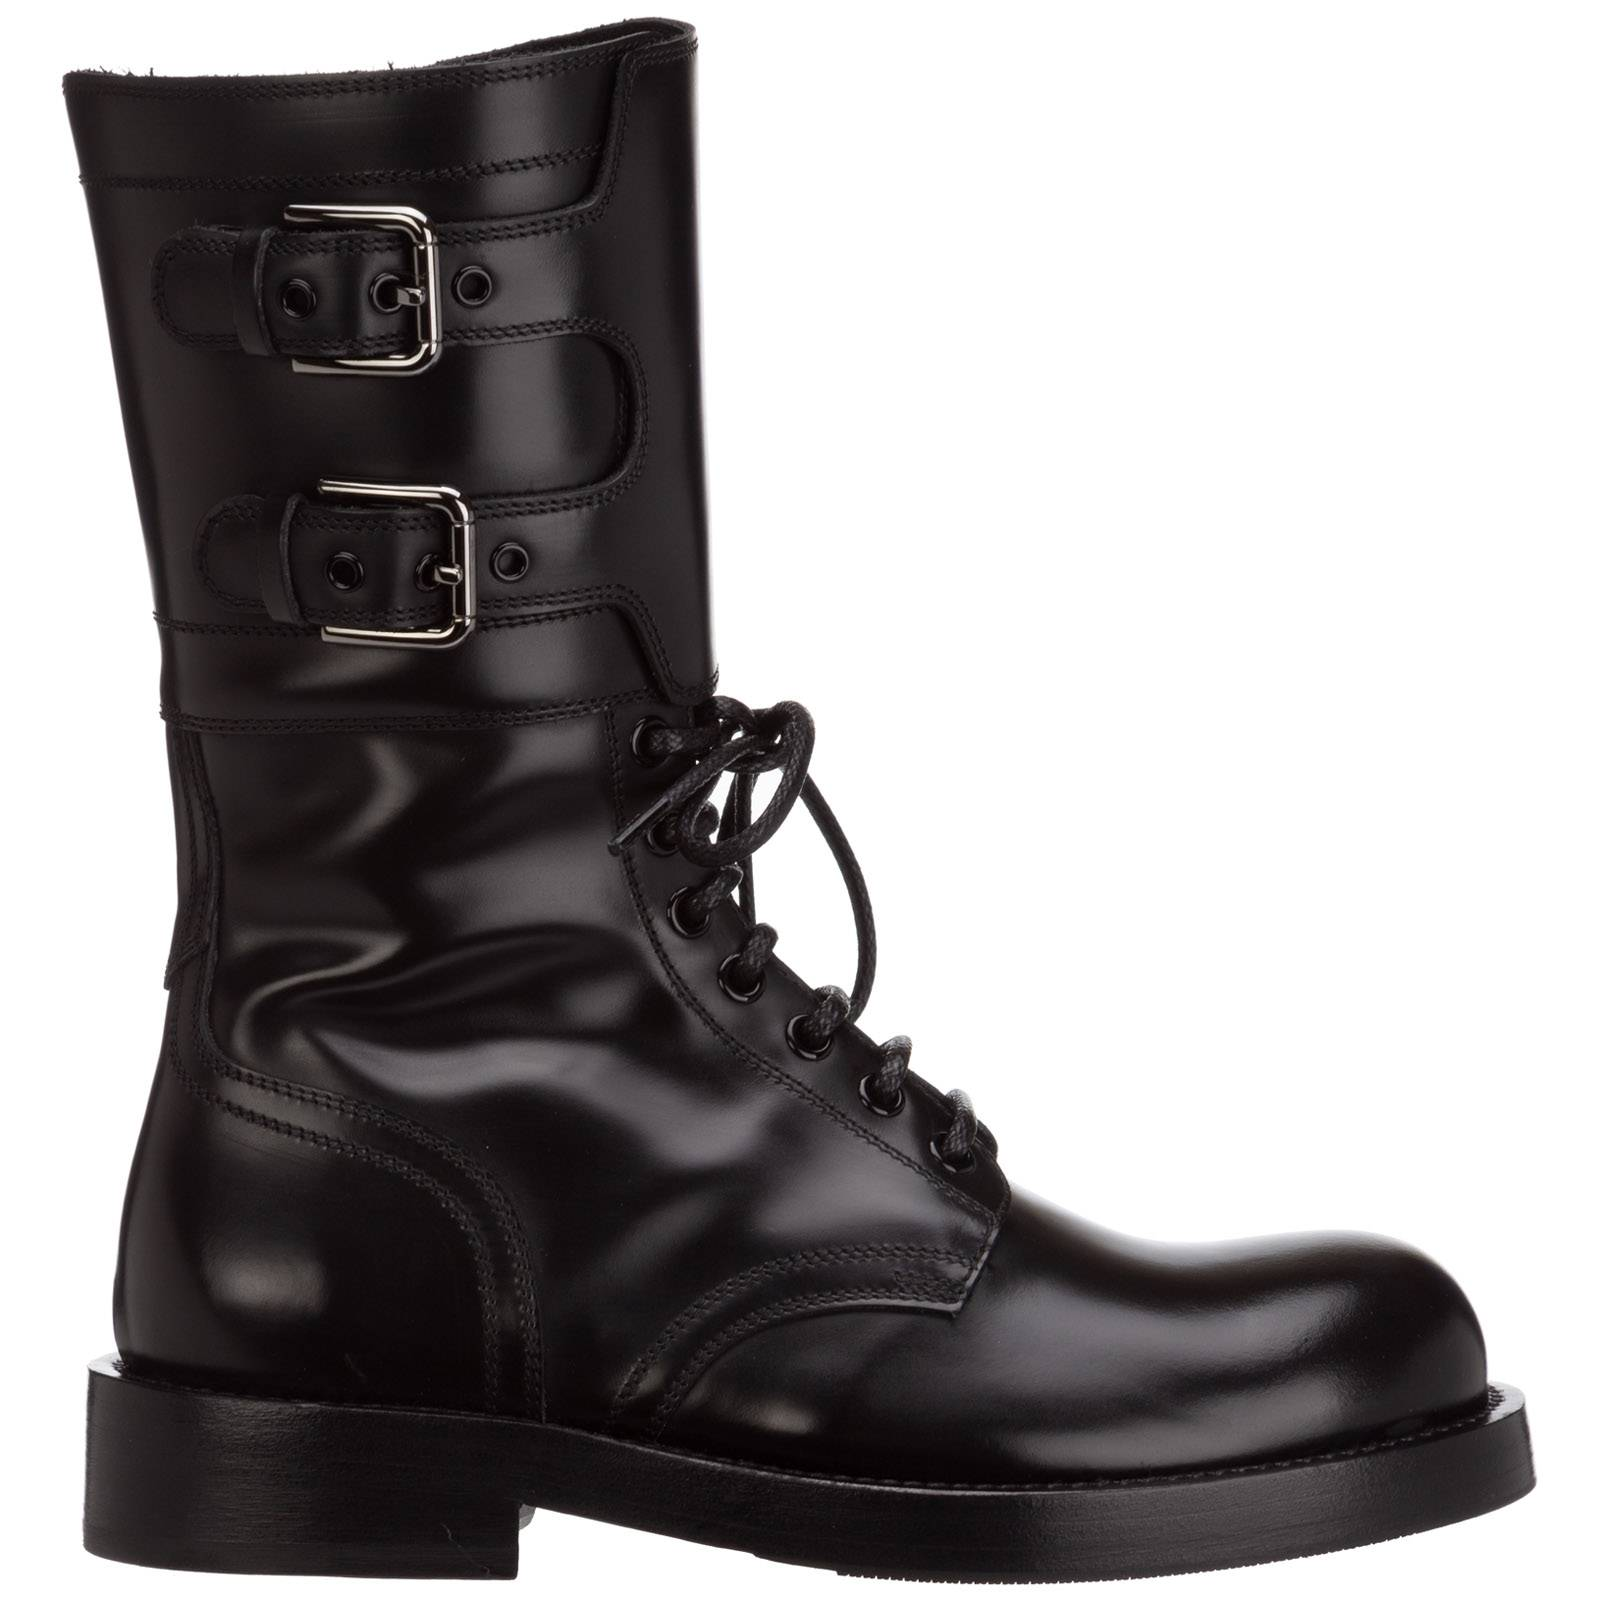 Dolce&Gabbana Women's leather ankle boots booties  - Women - Black - Size: 38